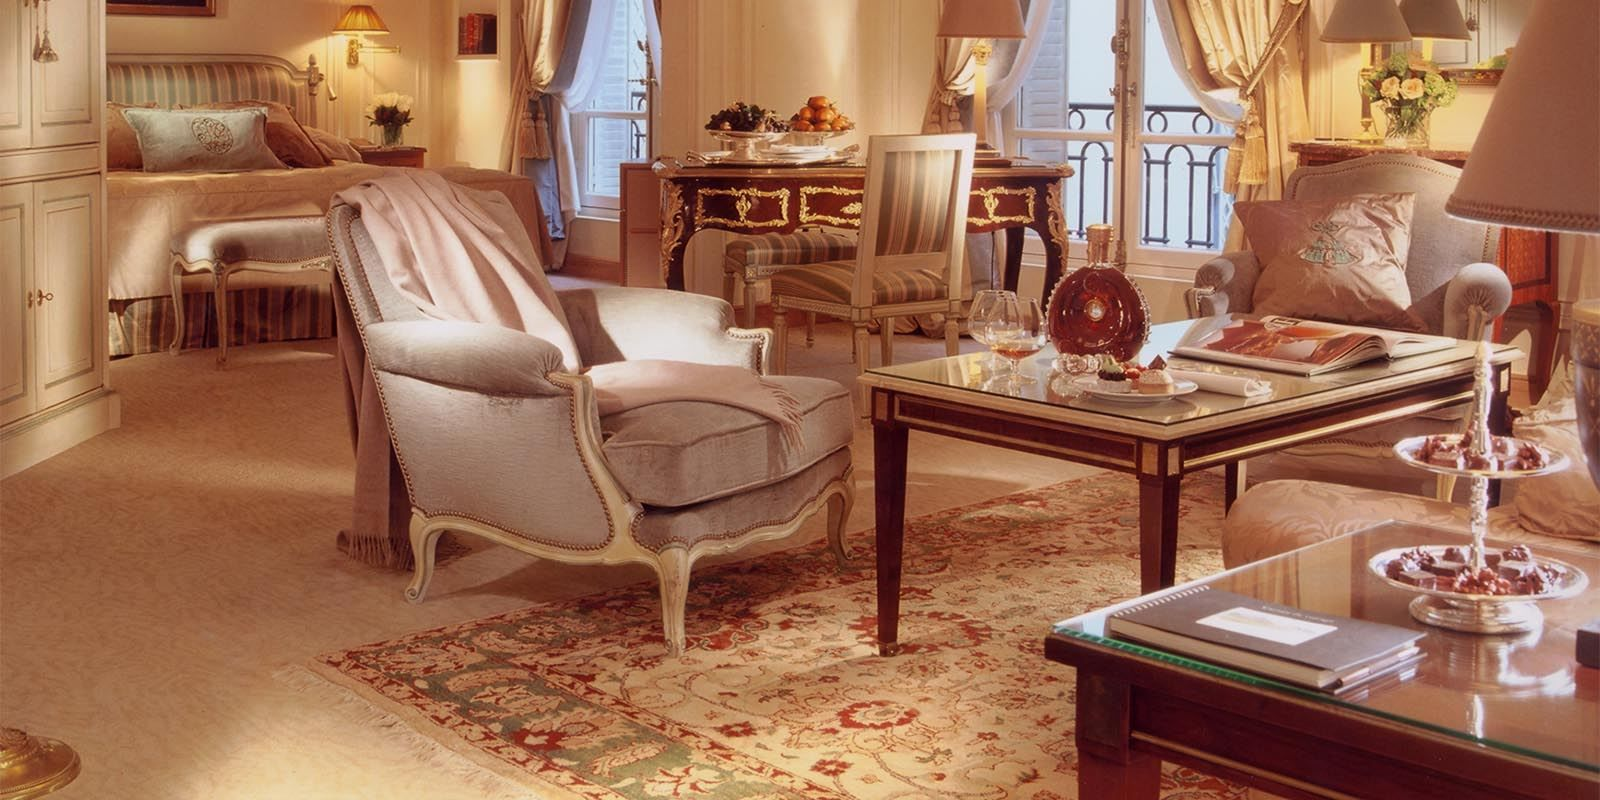 Junior Suite Deluxe Hotel Plaza Athenee Dorchester Collection Hotel Plaza Athenee Paris Hotel Inspiration Hotel Suite Luxury